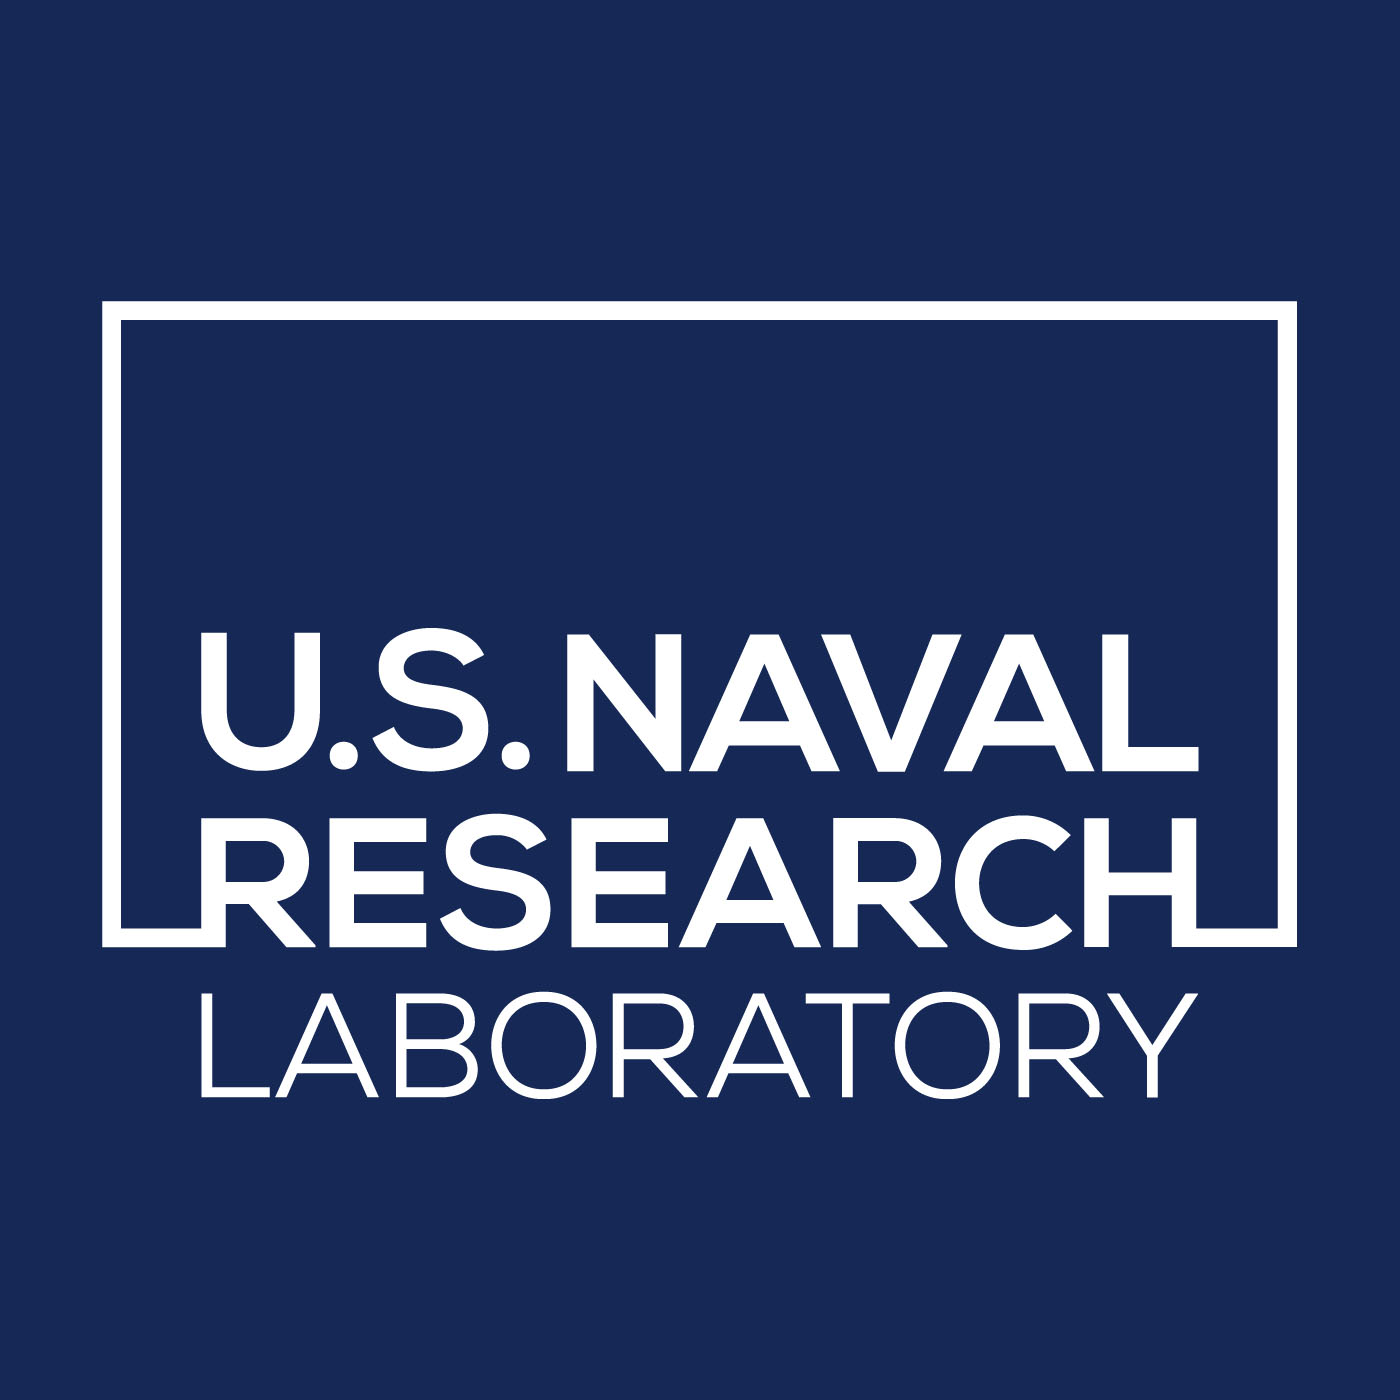 http://eoejournal.com/wp-content/uploads/2018/01/US-Naval-Research-Lab.jpg